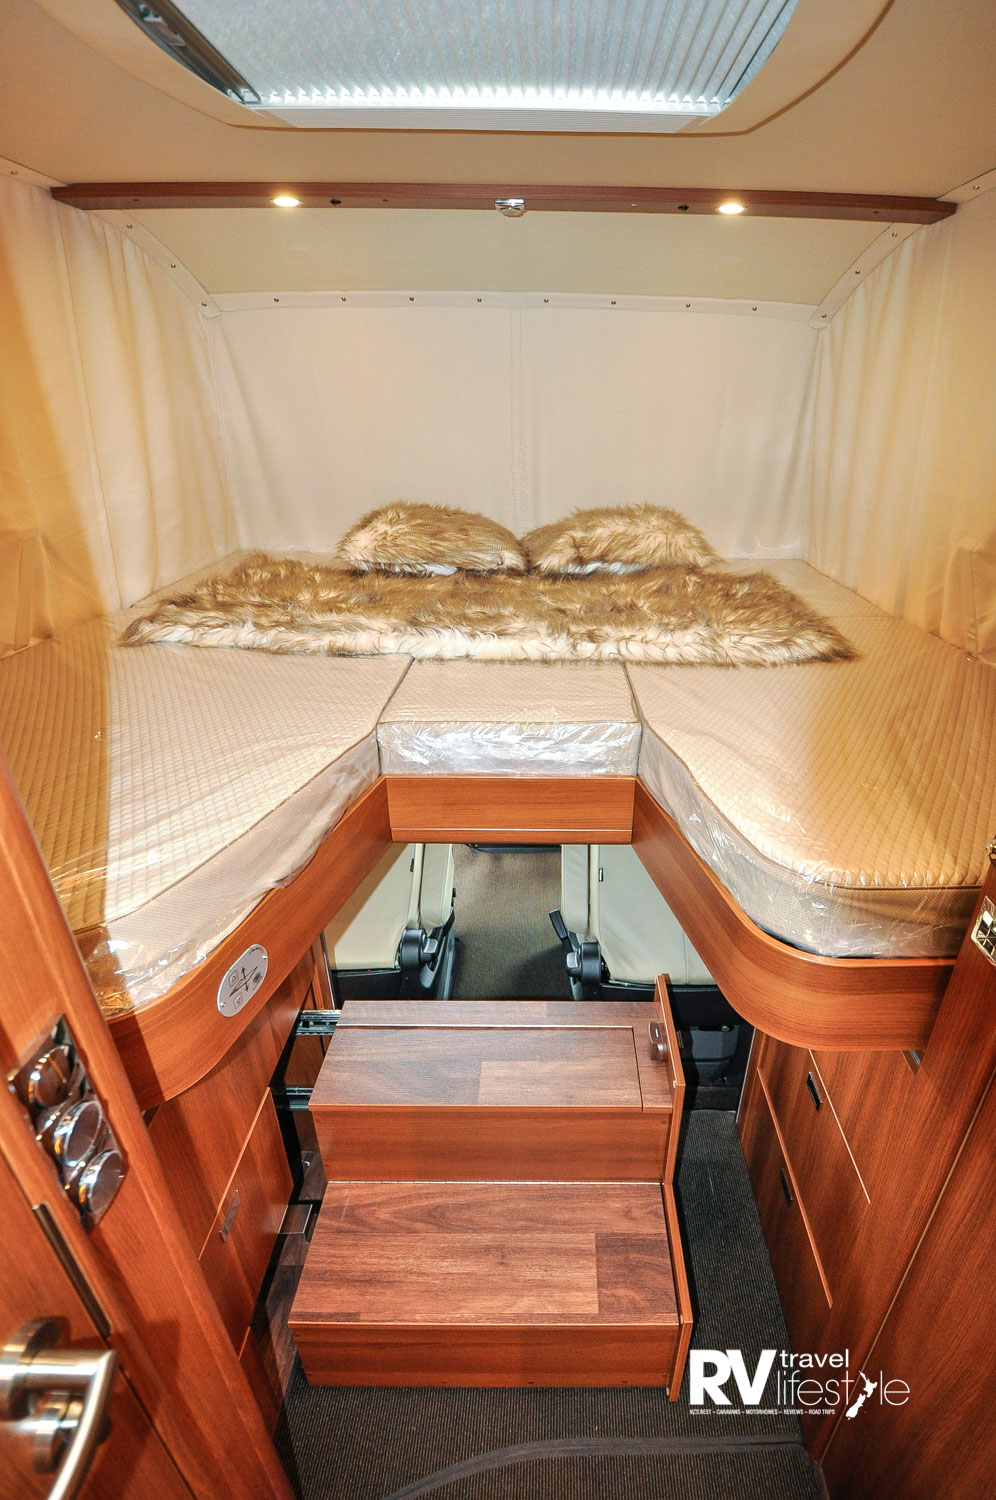 At the push of a button the bed unpacks itself and descends to shut off the front cab area completely. Steps come out of the cupboard for bed entry. The steps have storage in them as well, so all spaces used